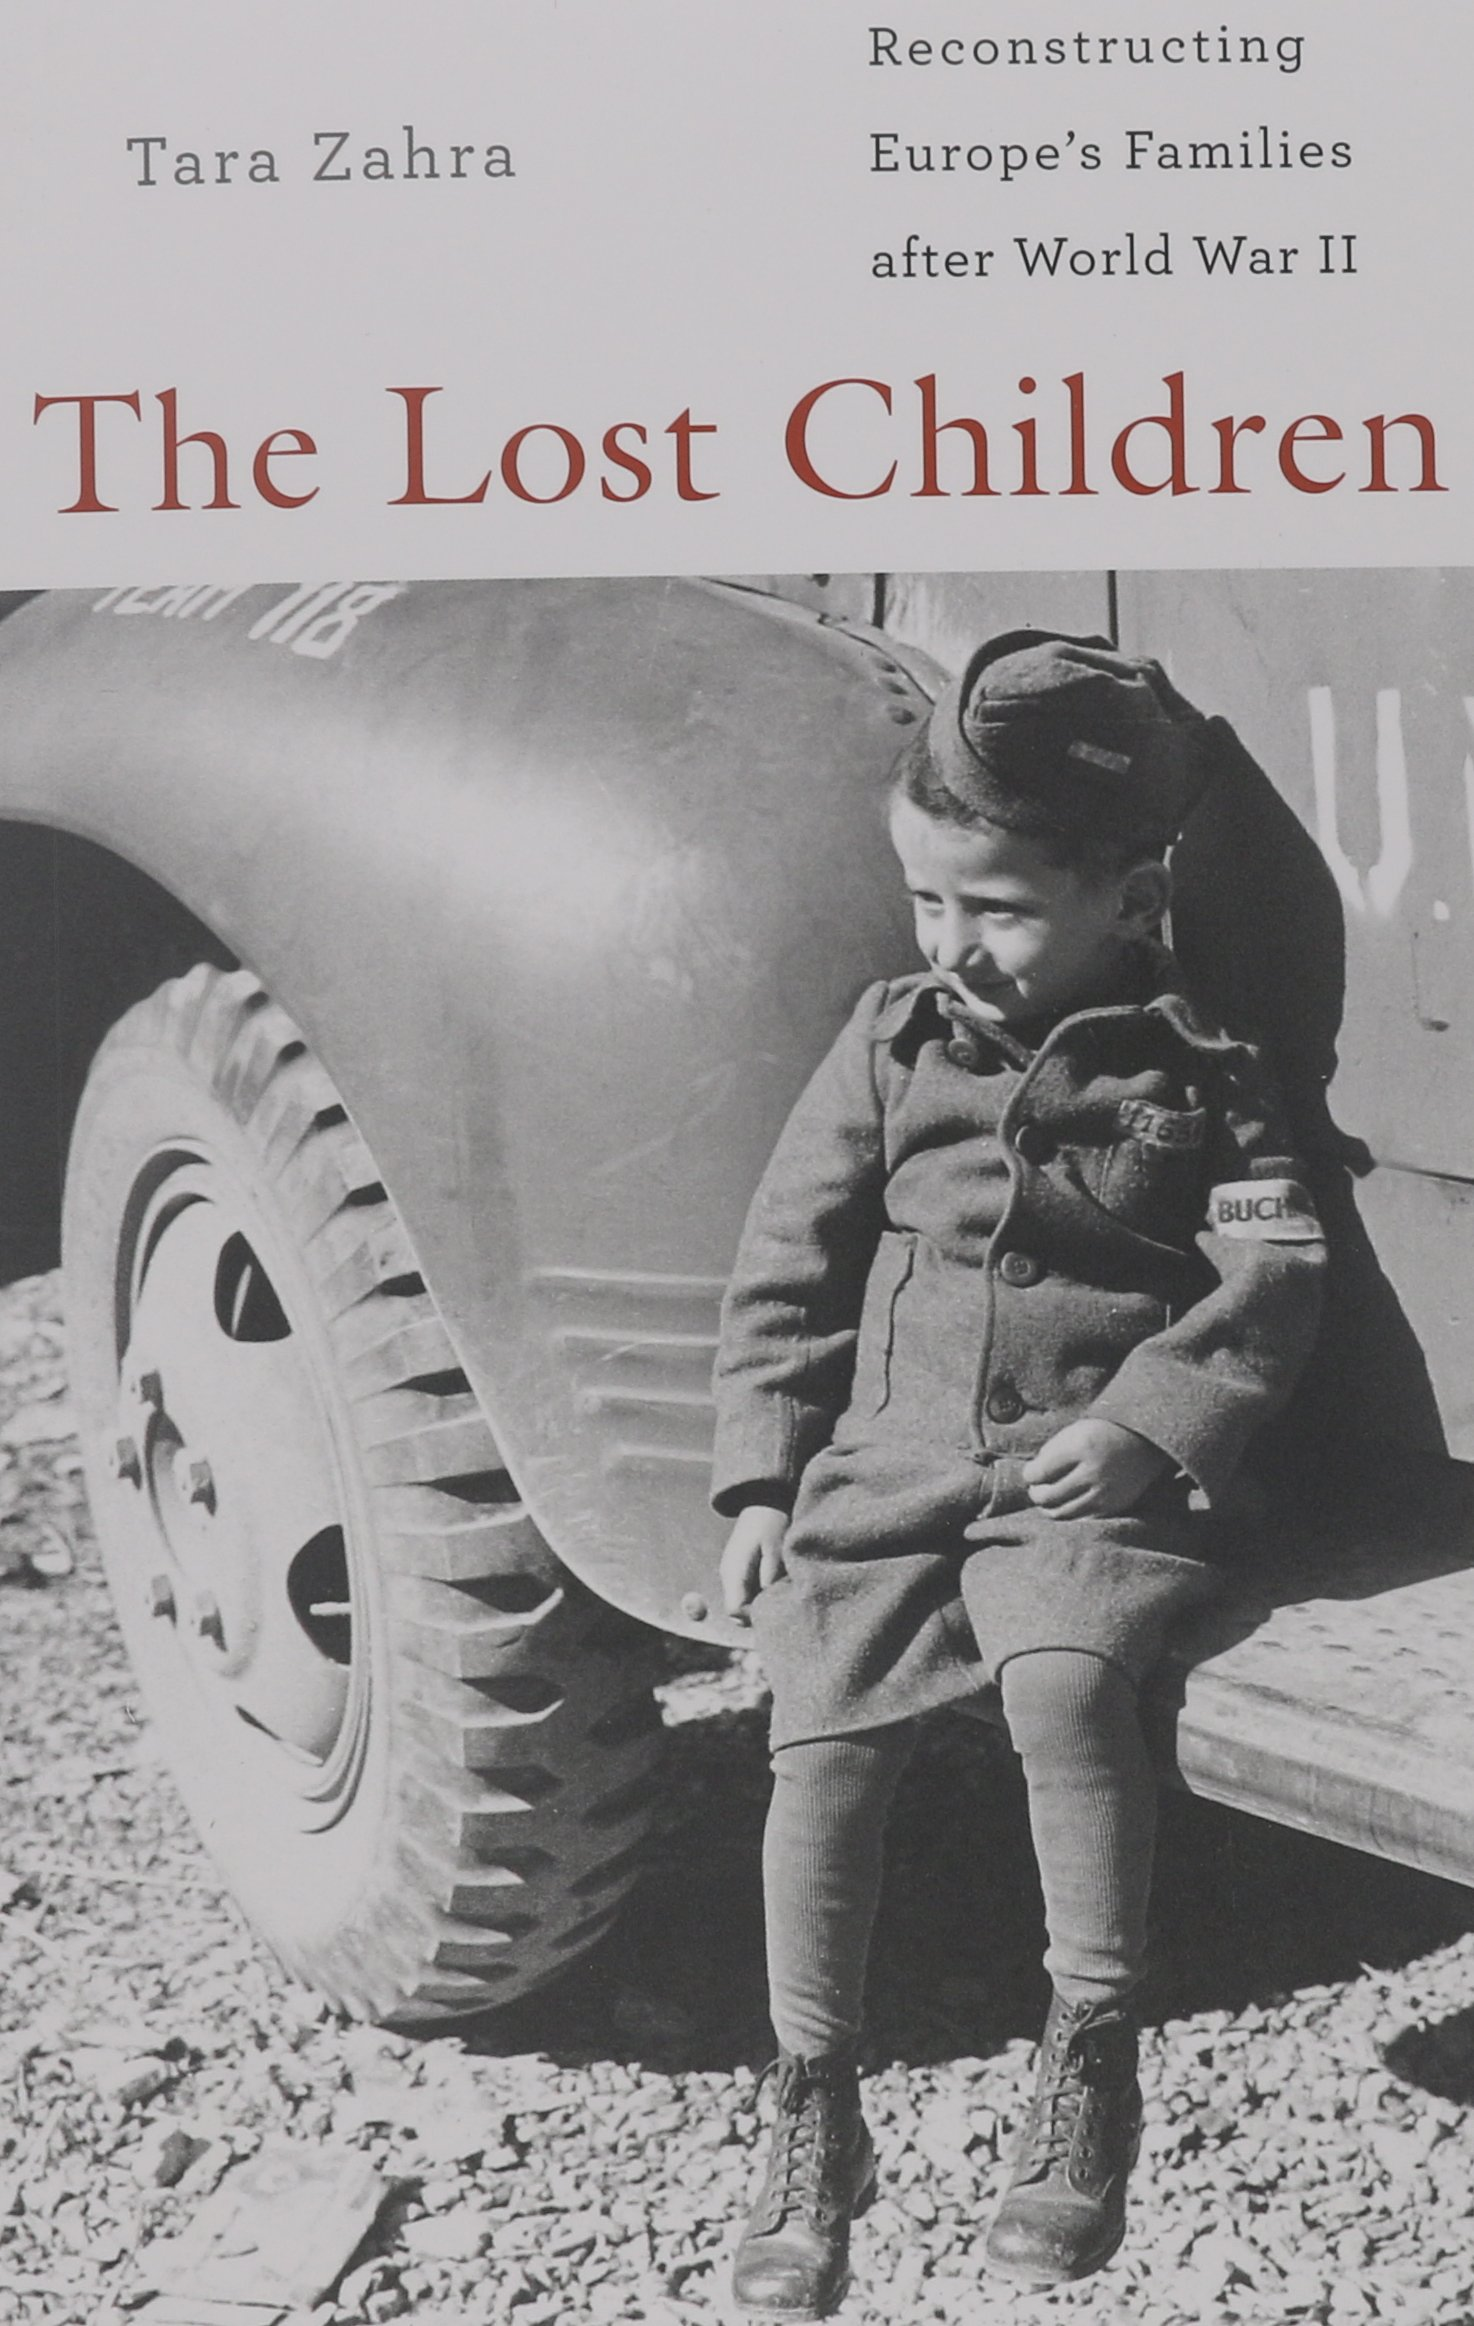 f67b3a7b5fb The Lost Children  Reconstructing Europe s Families after World War ...